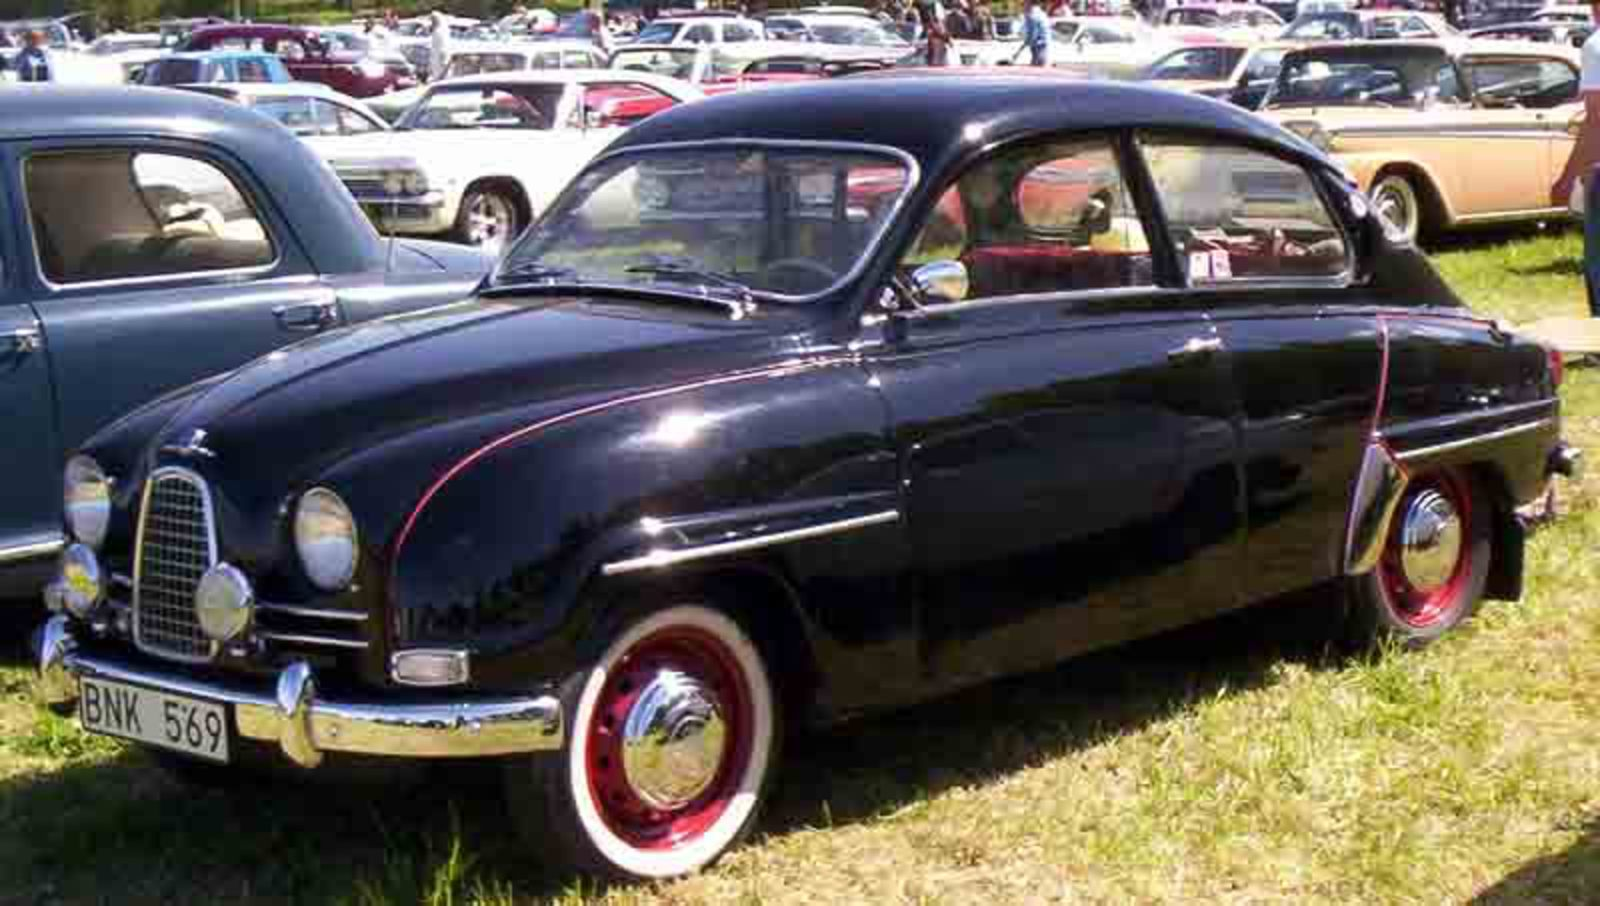 File:SAAB 96 De Luxe 1961 2.jpg. No higher resolution available.